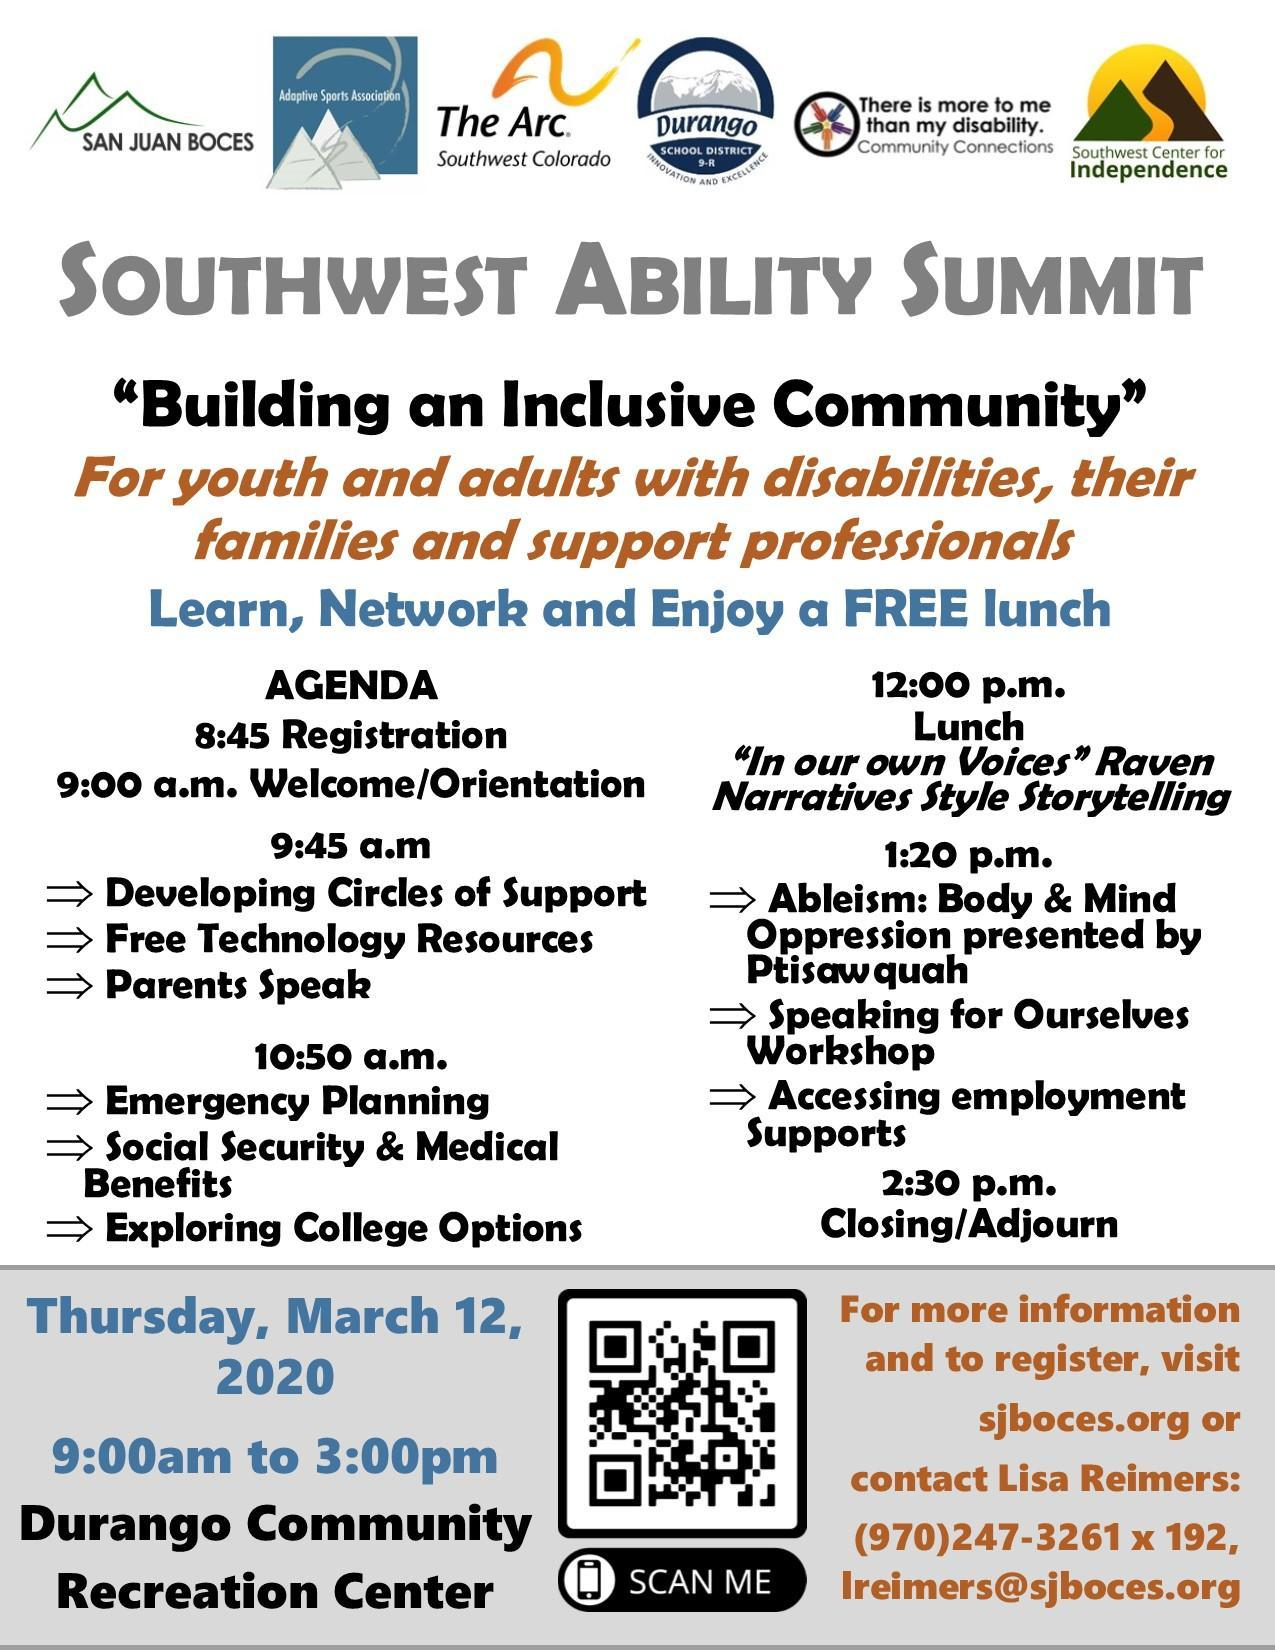 2020 Southwest Ability Summit Event on March 12th from 9:00am-3:00pm at the Durango Community Recreation Center